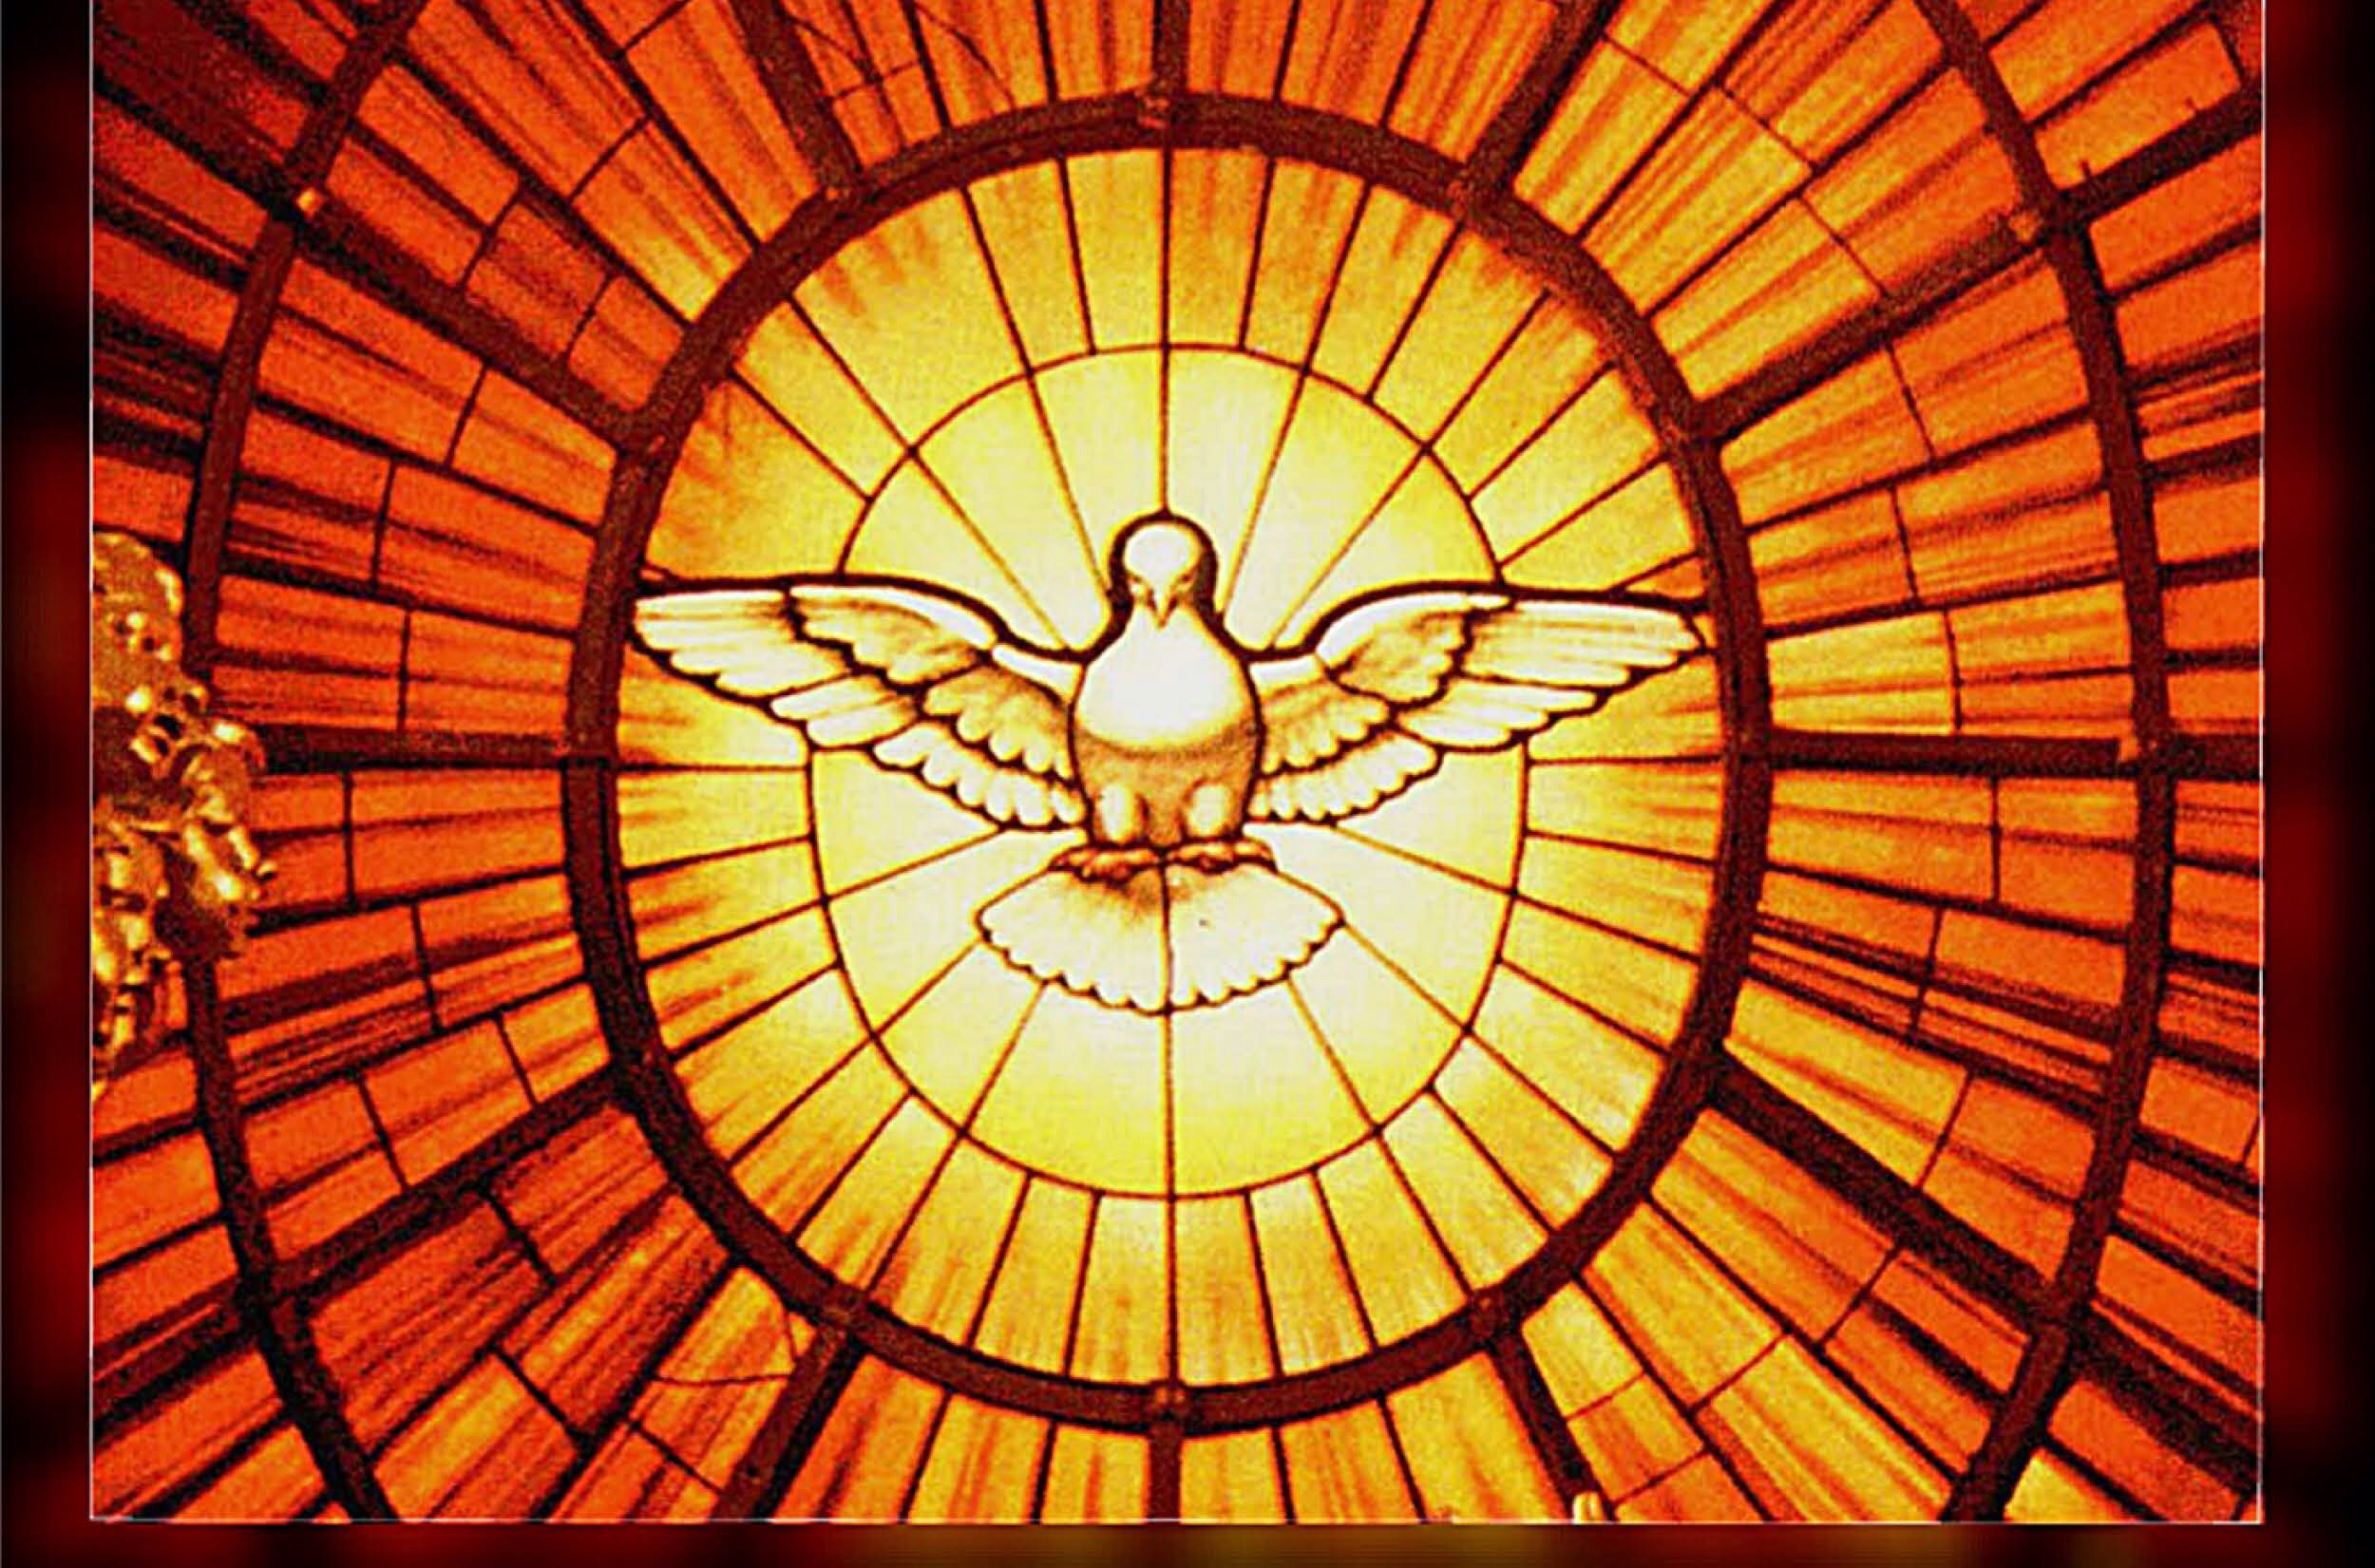 Come and celebrate the Feast of Pentecost at St. Andrew's, Box Hill –  10:30am on Sunday 24th May